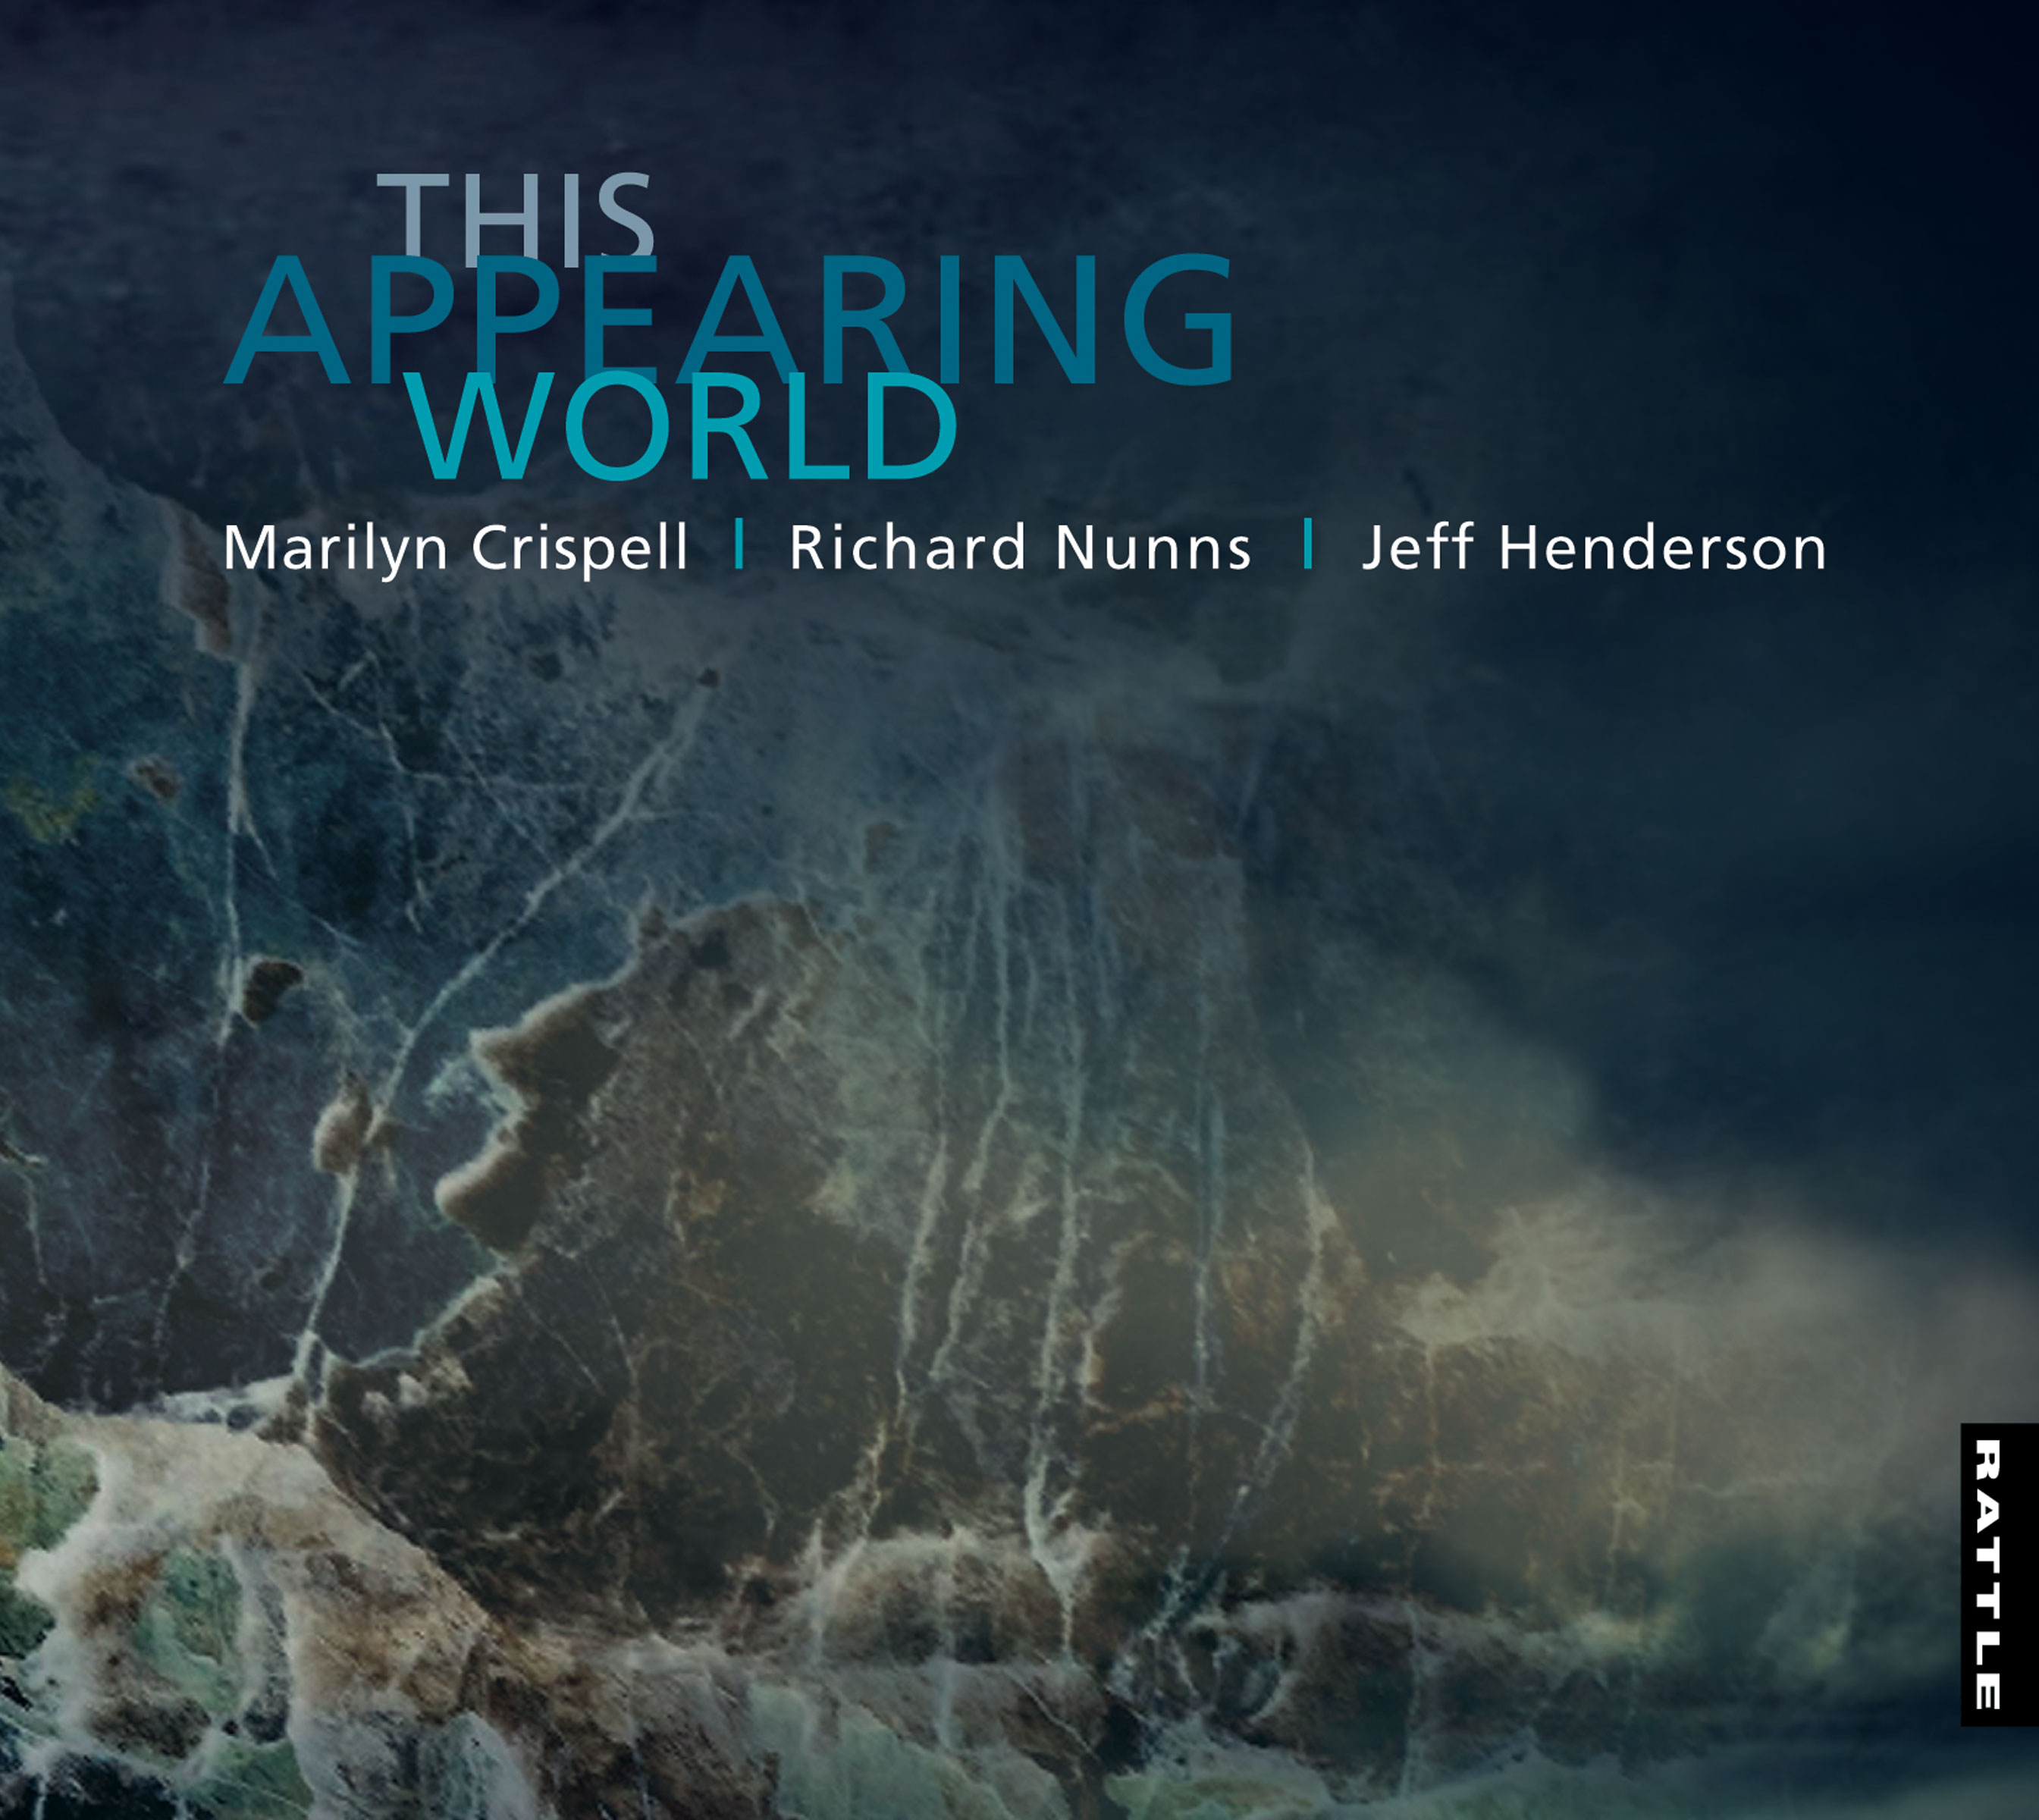 Jeff Henderson, Marilyn Crispell and Richard Nunns | This Appearing World - downloadable MP3 ALBUM